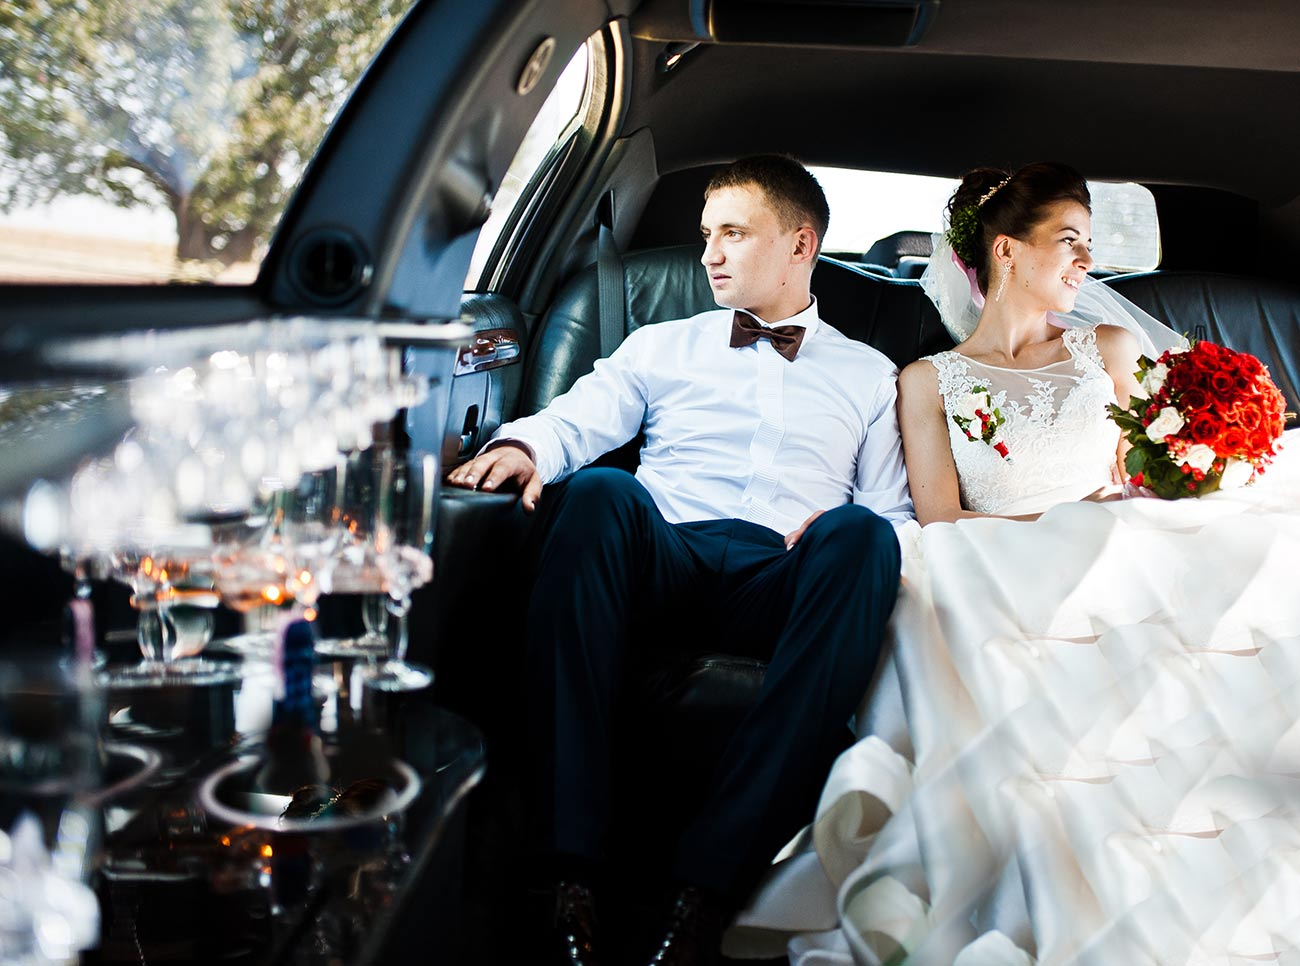 LI Top Wedding Limo Service